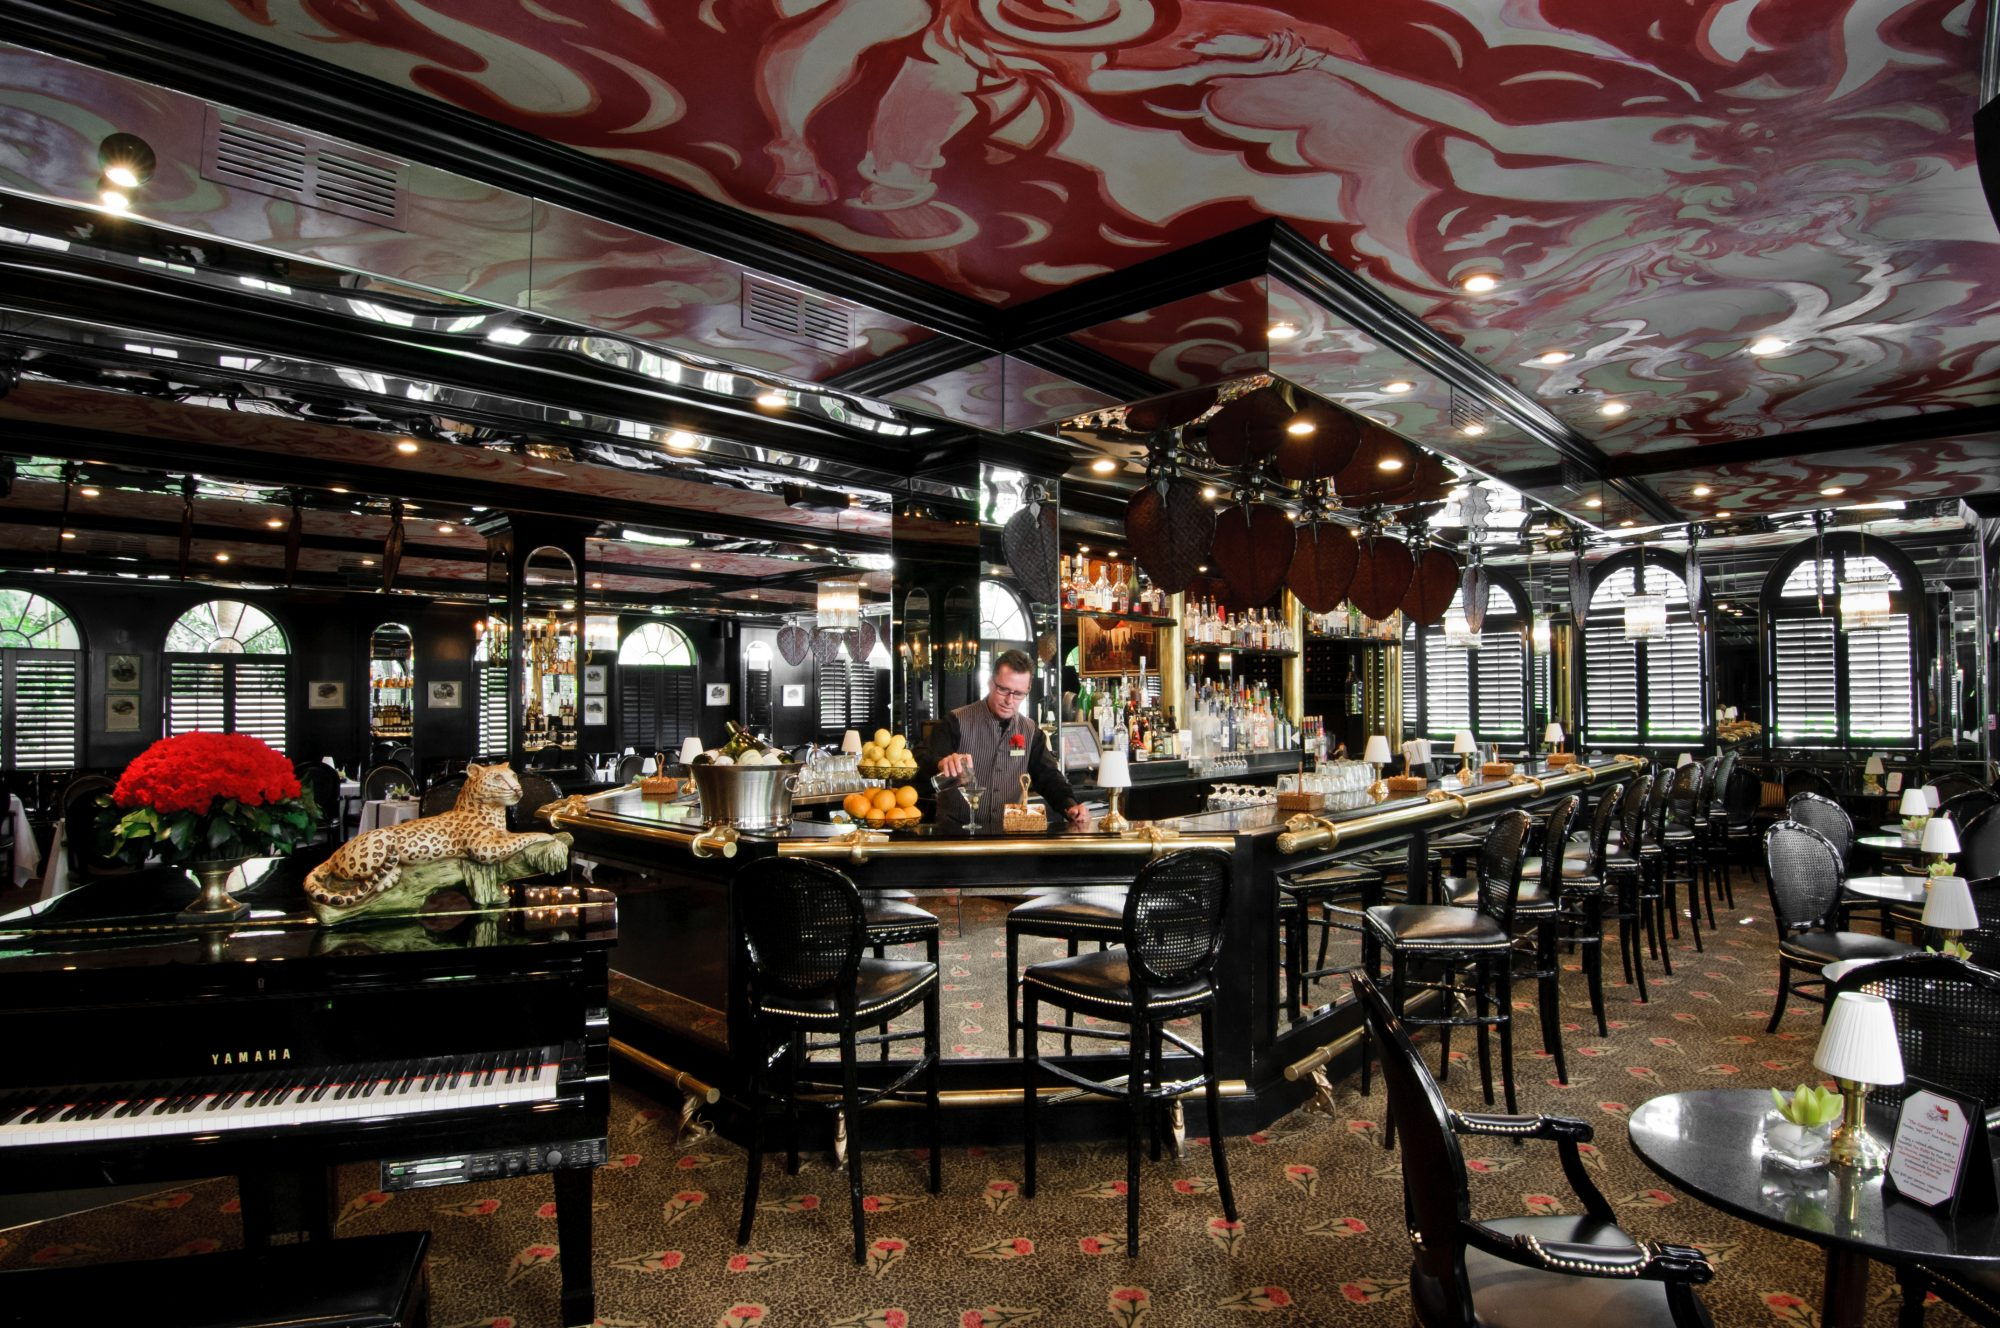 14. The Leopard Lounge